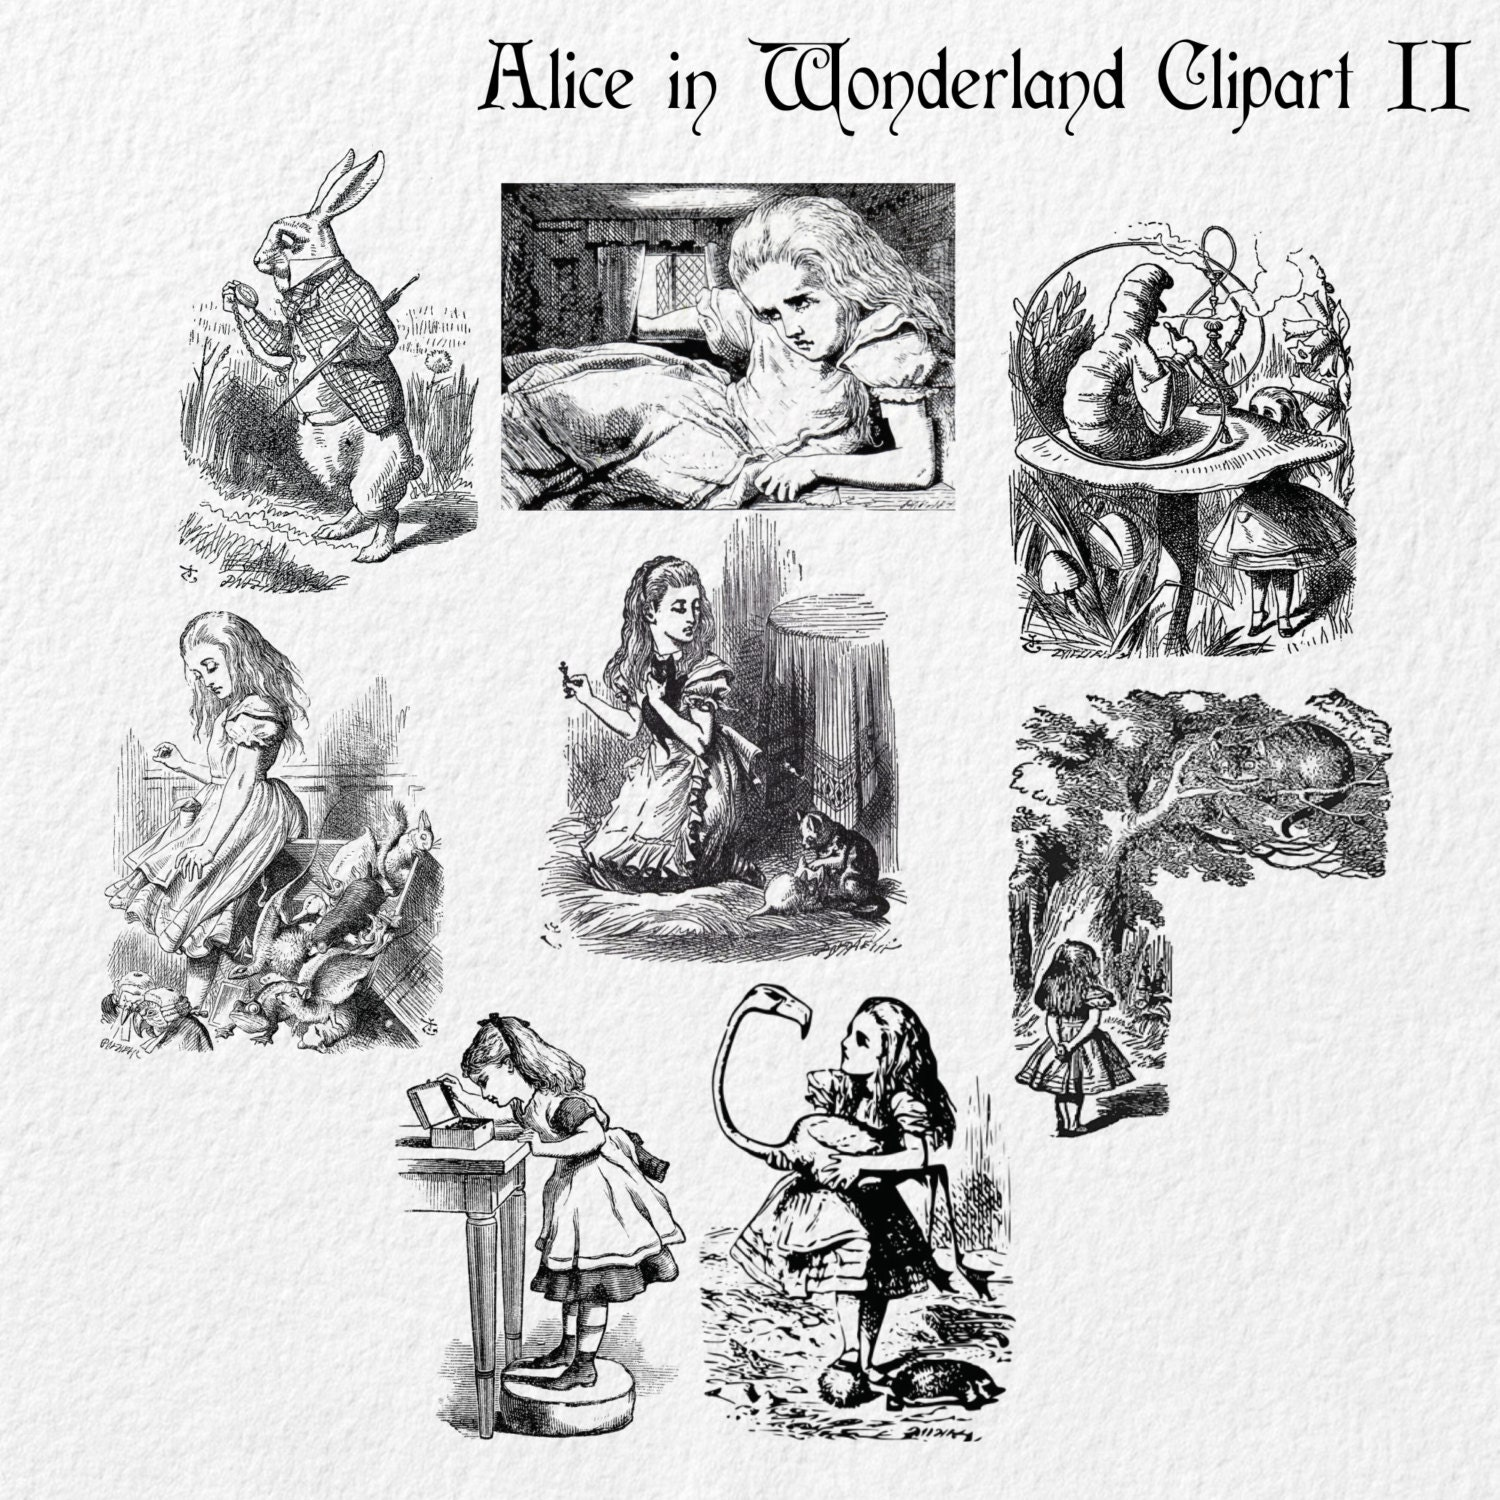 vintage clip art alice in wonderland - photo #19